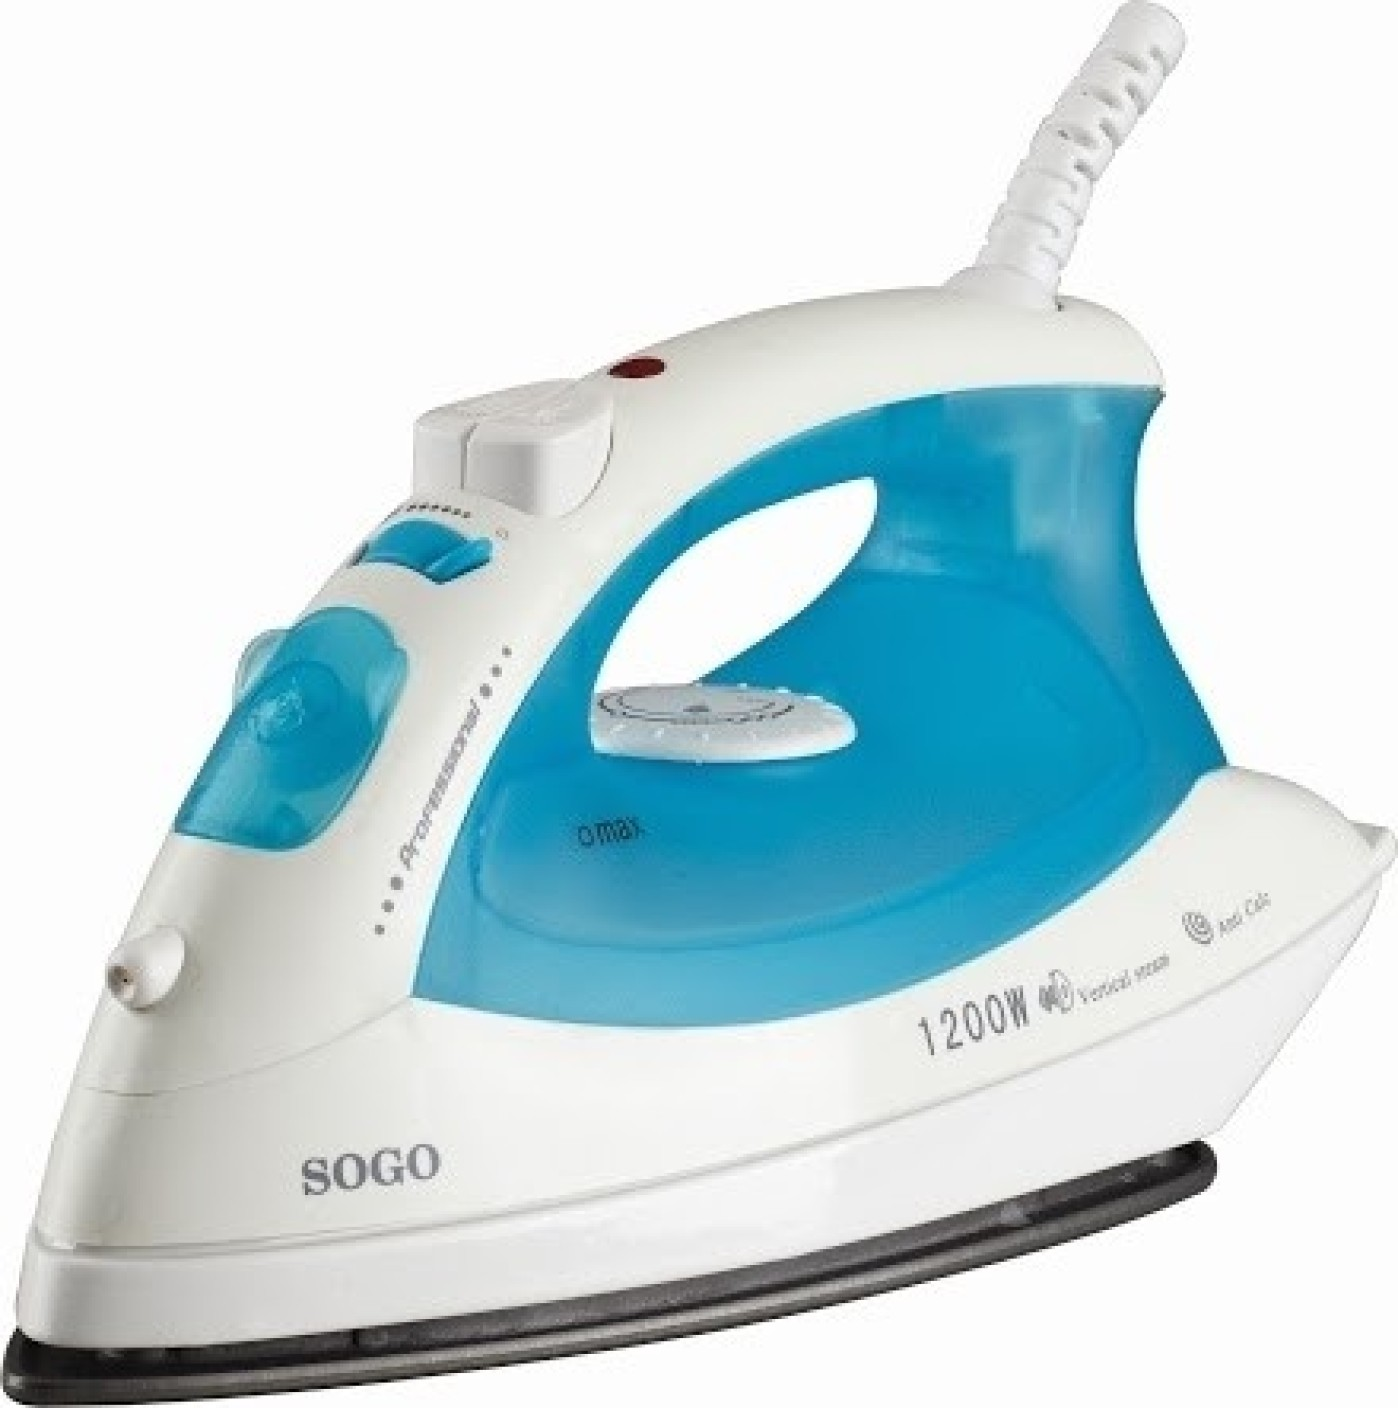 Sogo Ss 6210 Electronic Steam Iron Box Steam Iron Price In